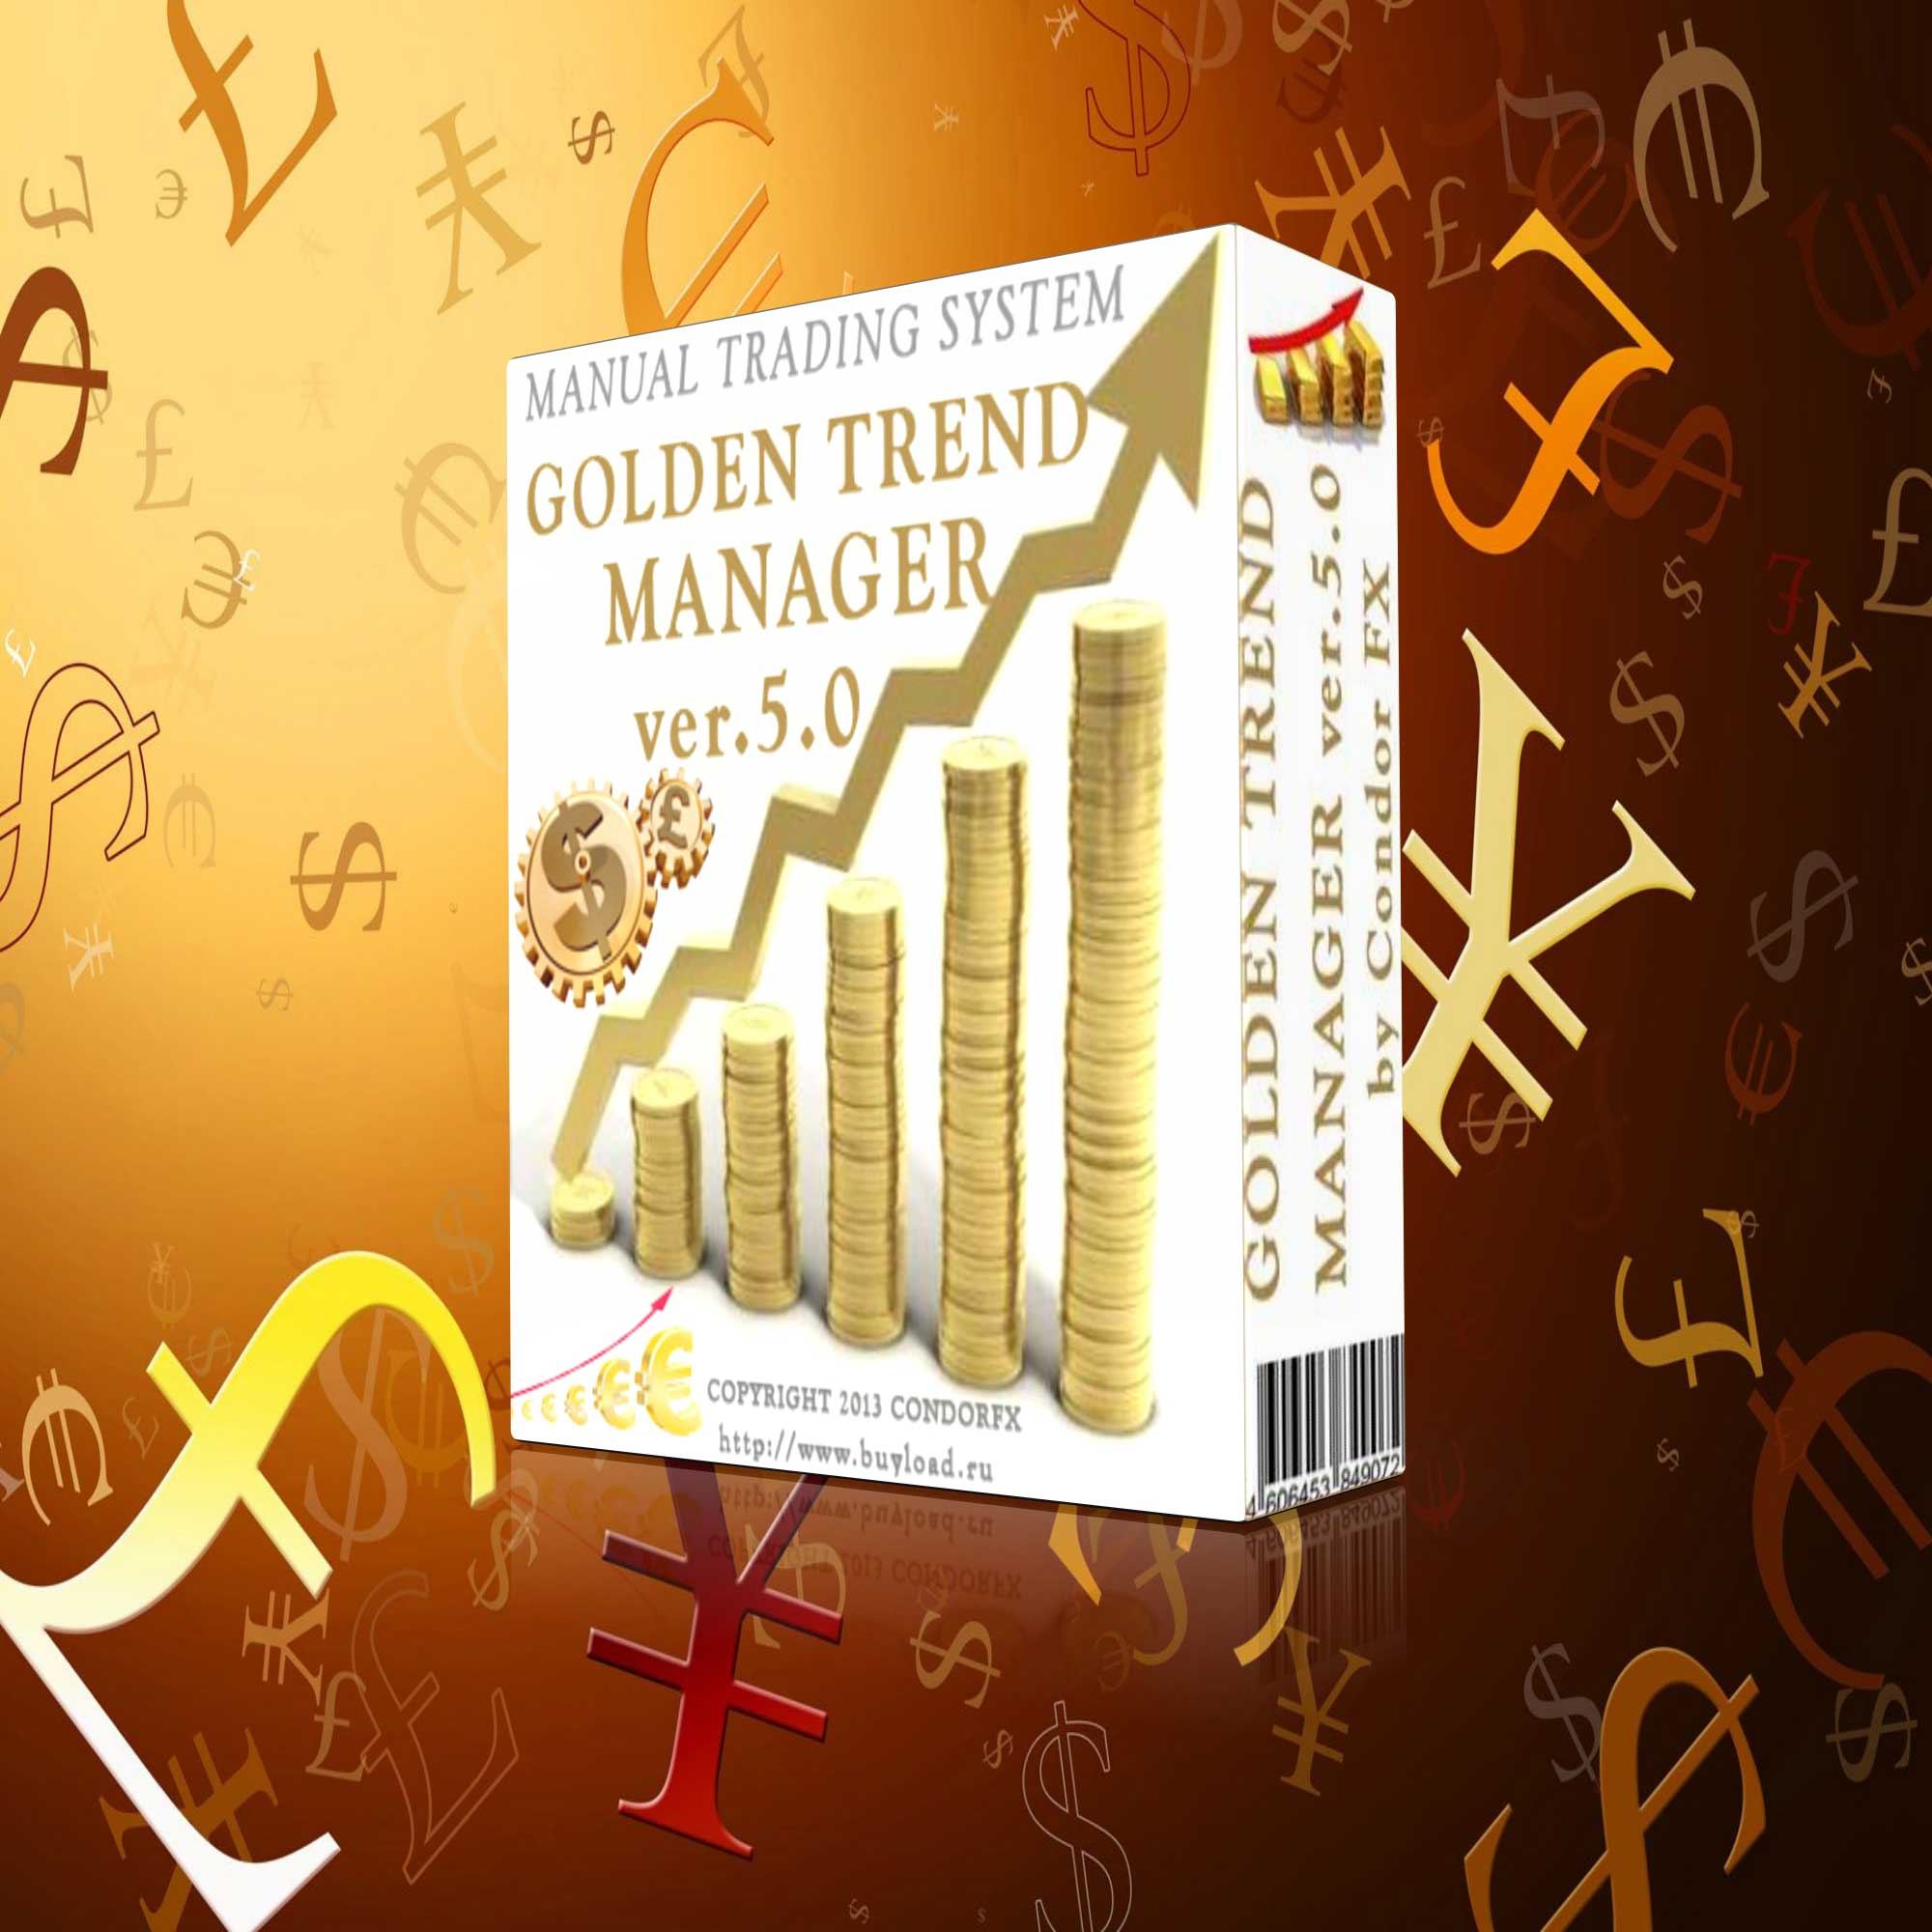 GOLDEN TREND MANAGER 5 - a system of profit for the trader